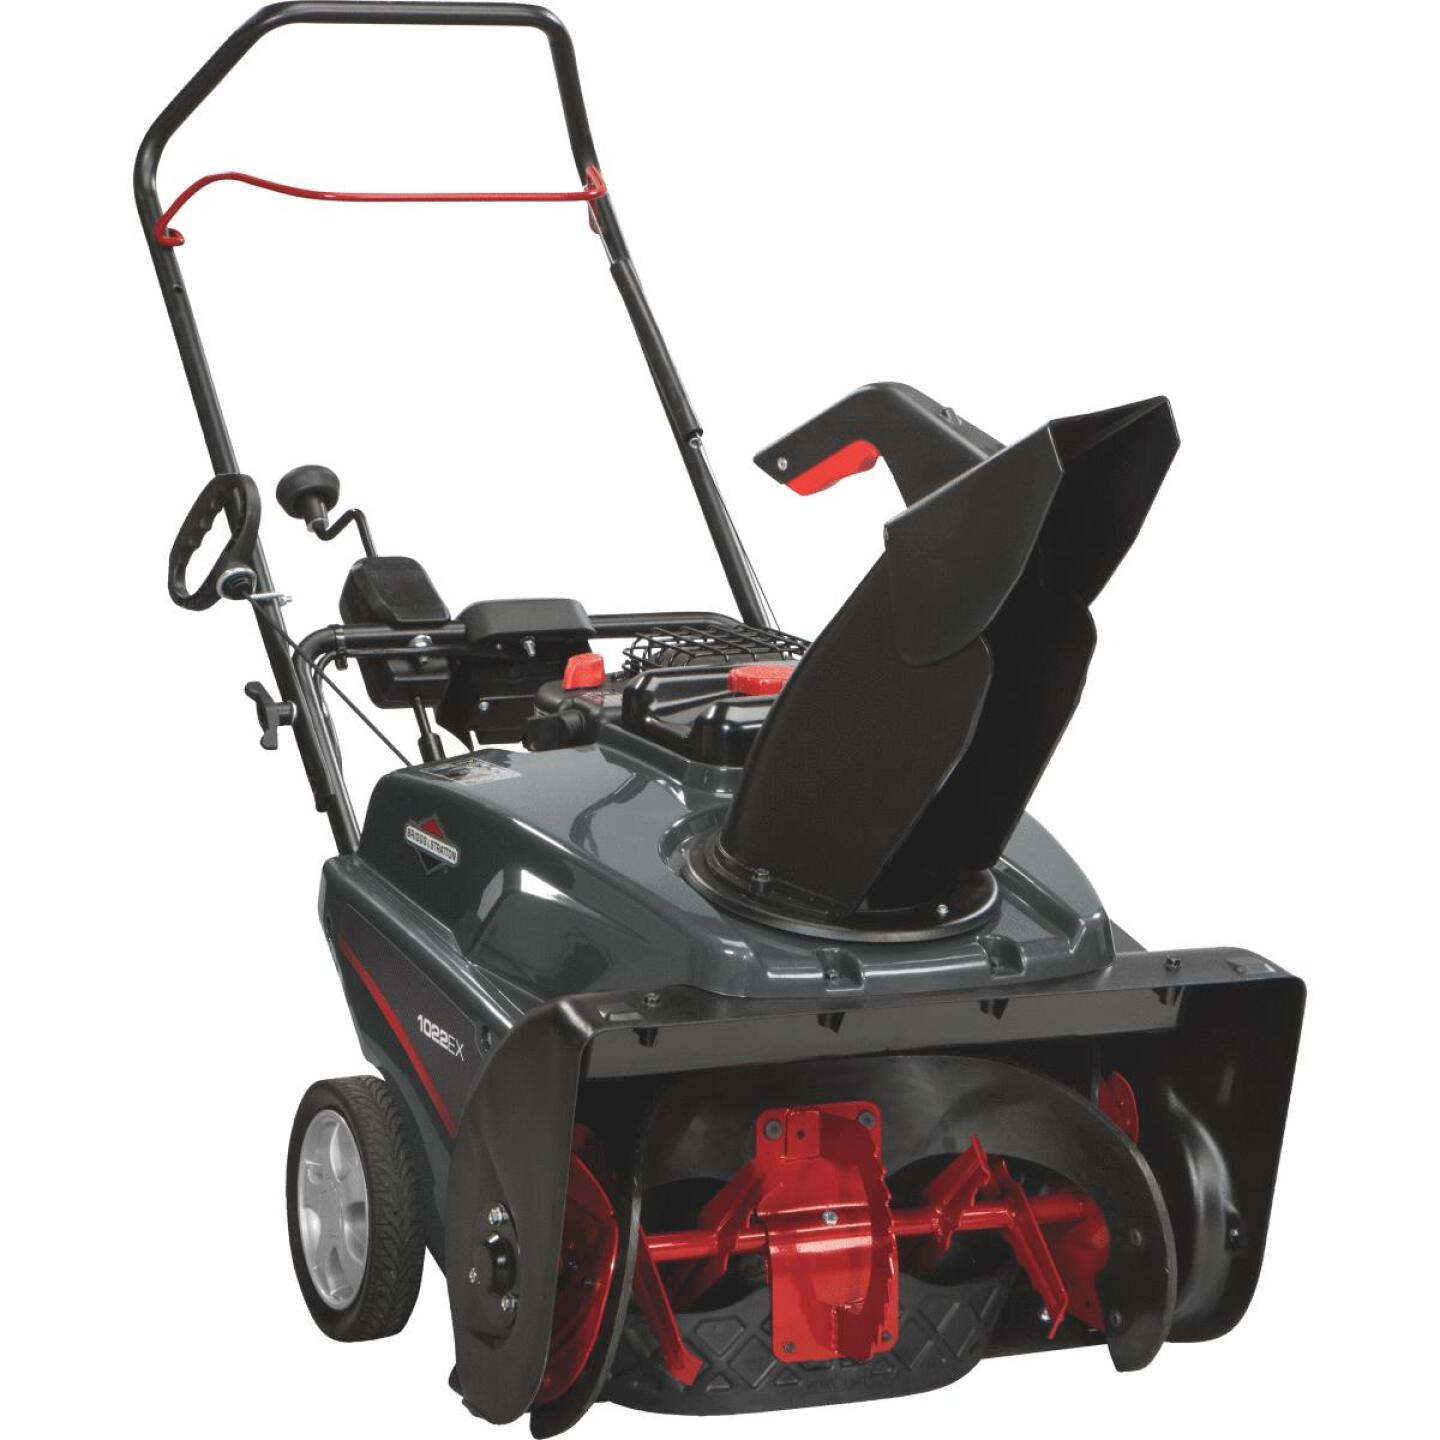 Briggs & Stratton 22 In. 208cc Single-Stage Gas Snow Blower Image 1